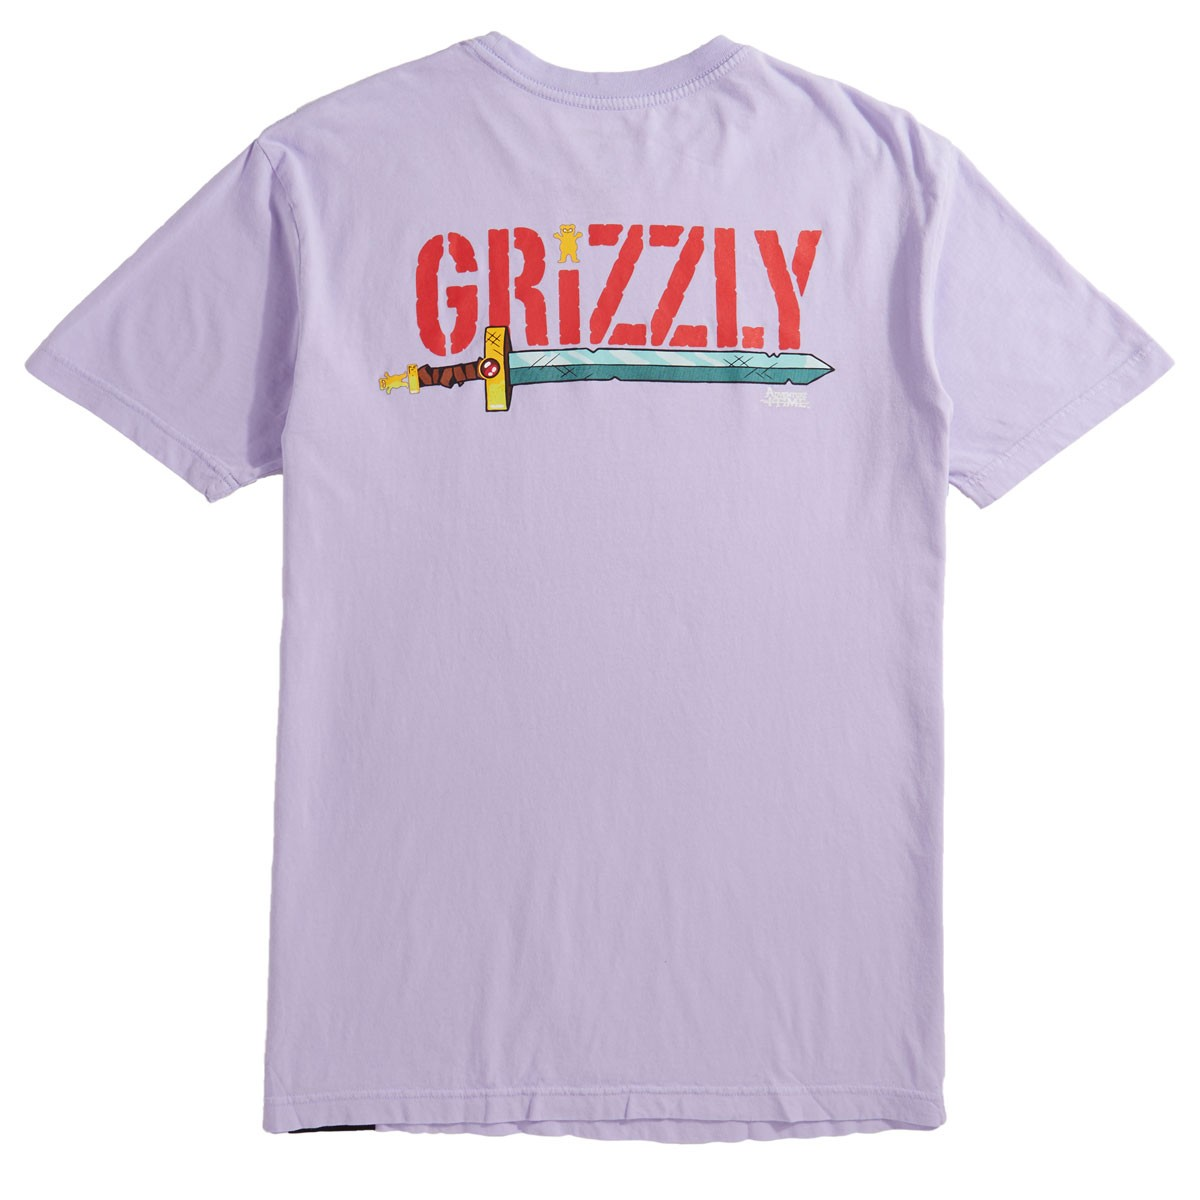 e7e71f87 Grizzly X Adventure Time Lets Get Stupid T-Shirt - Lavender